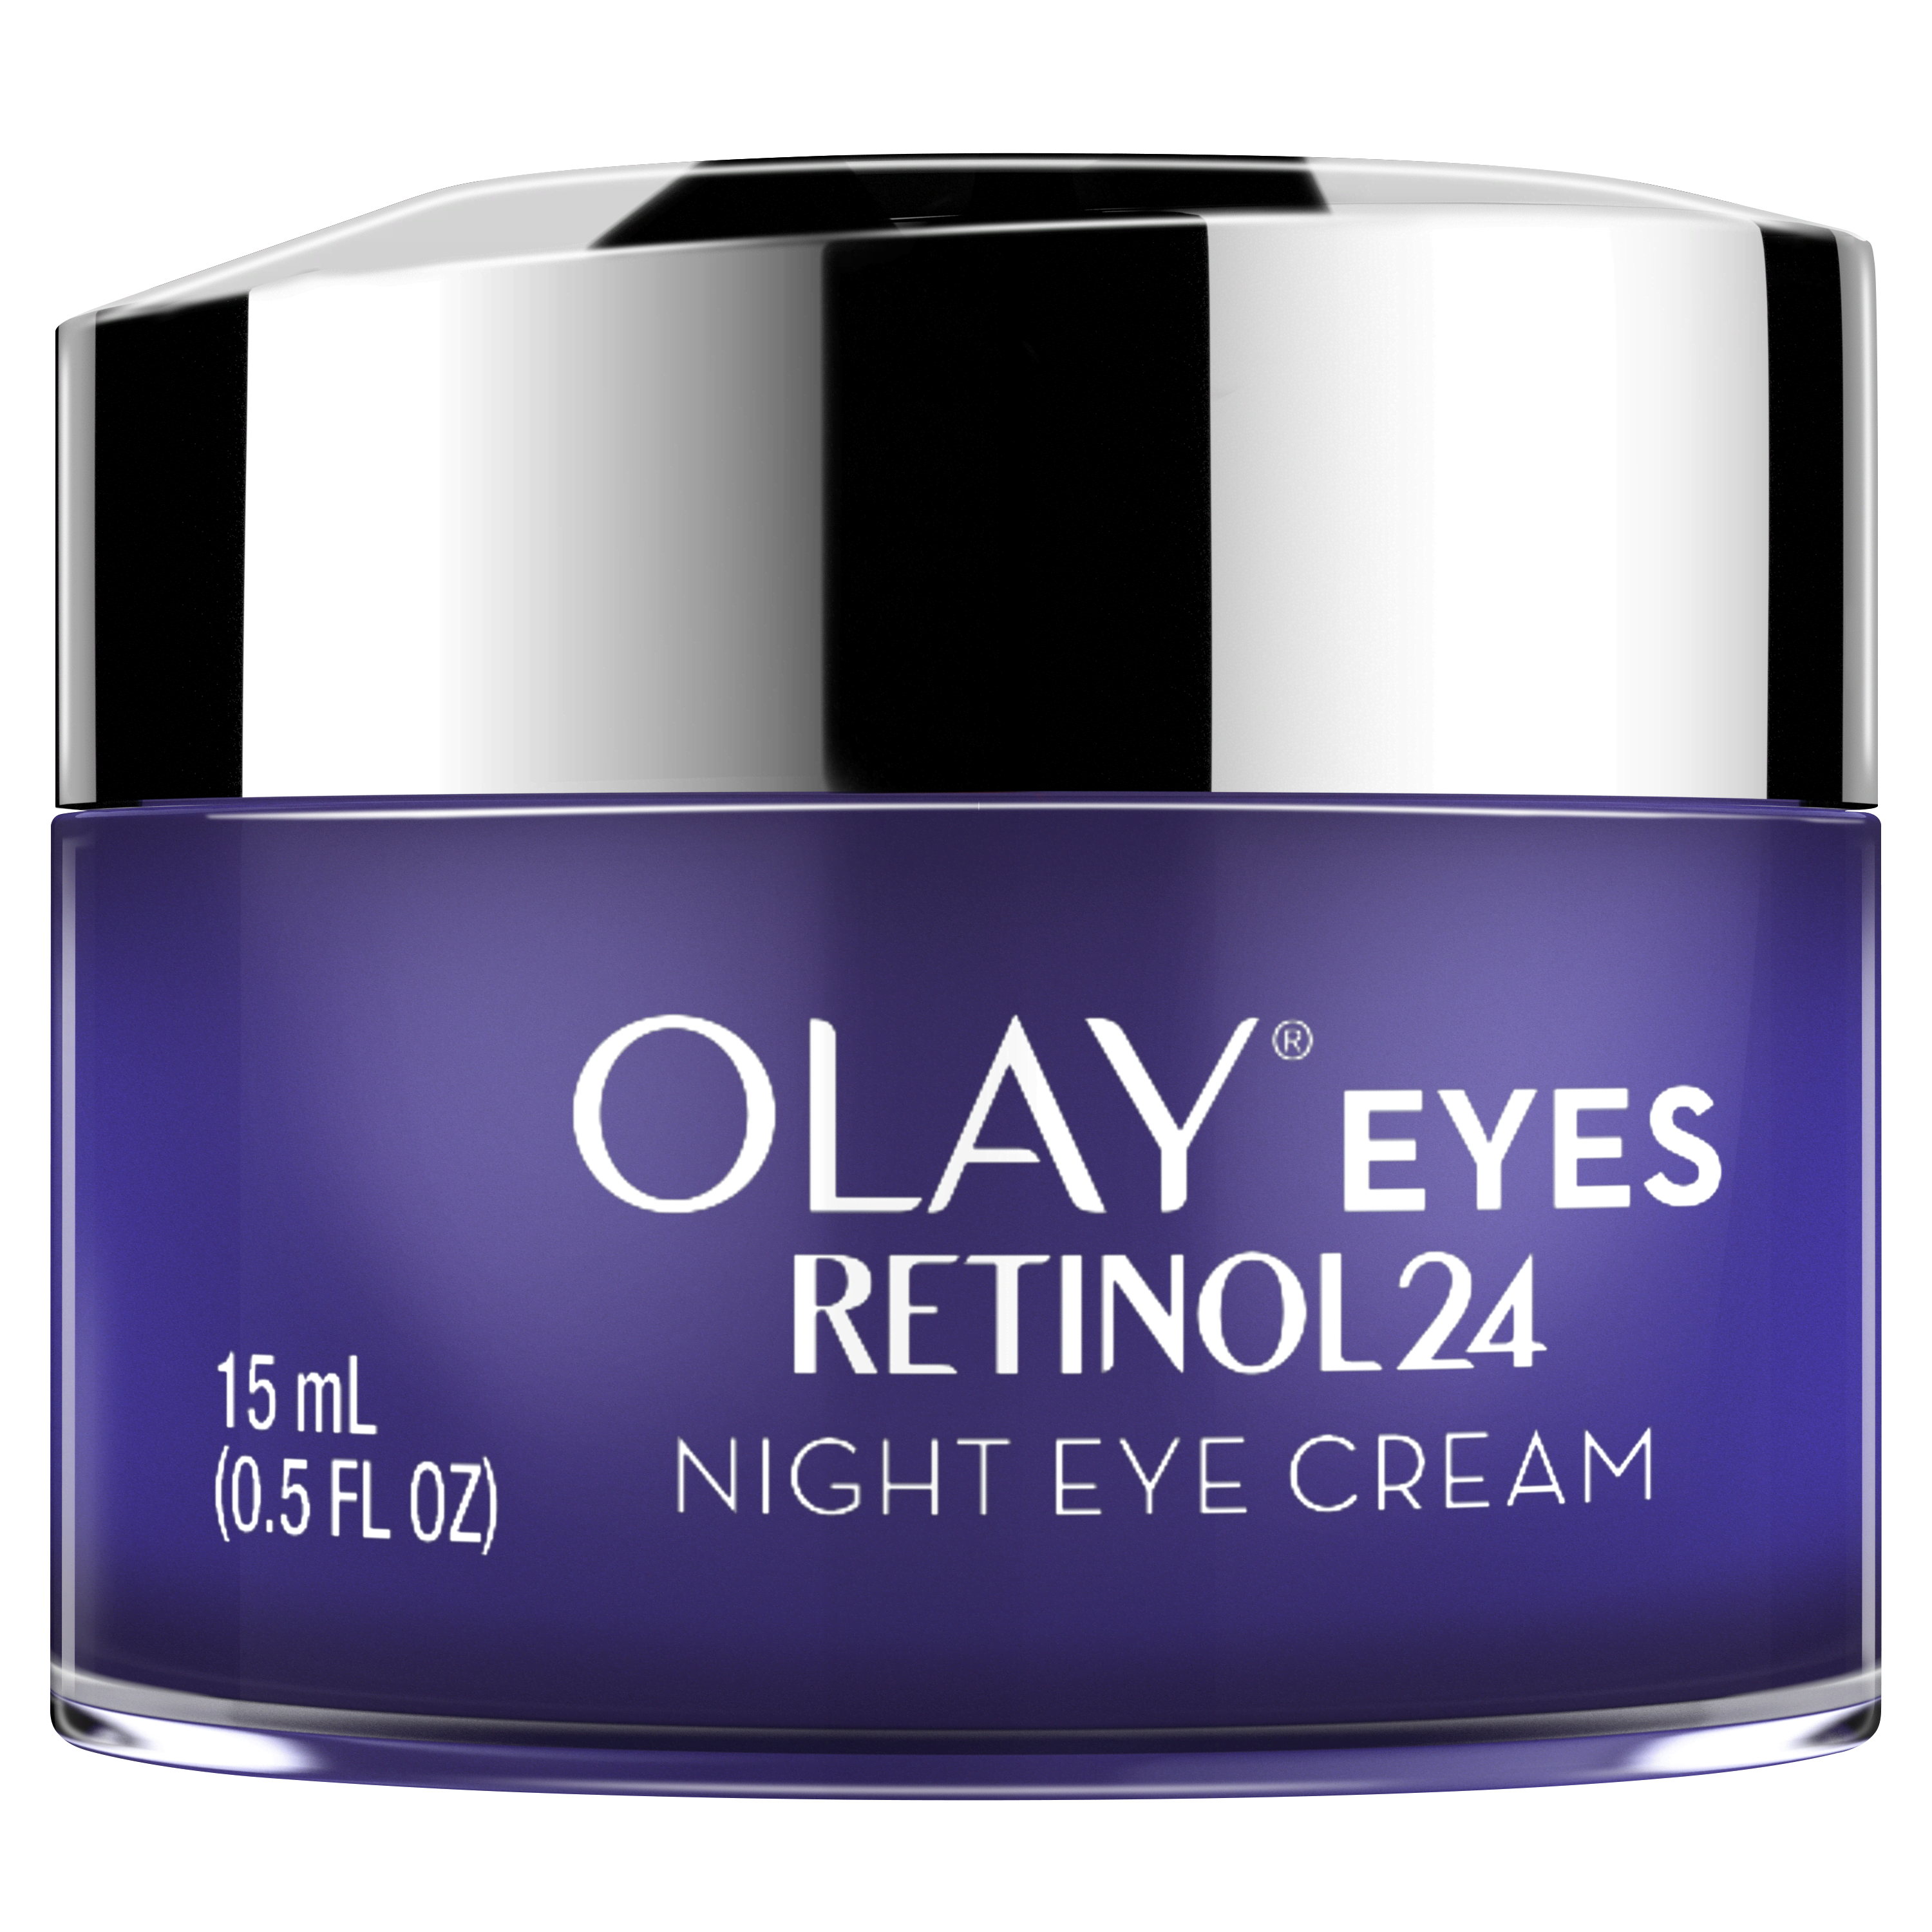 Olay Eyes Retinol24 Night Eye Cream 15 mL